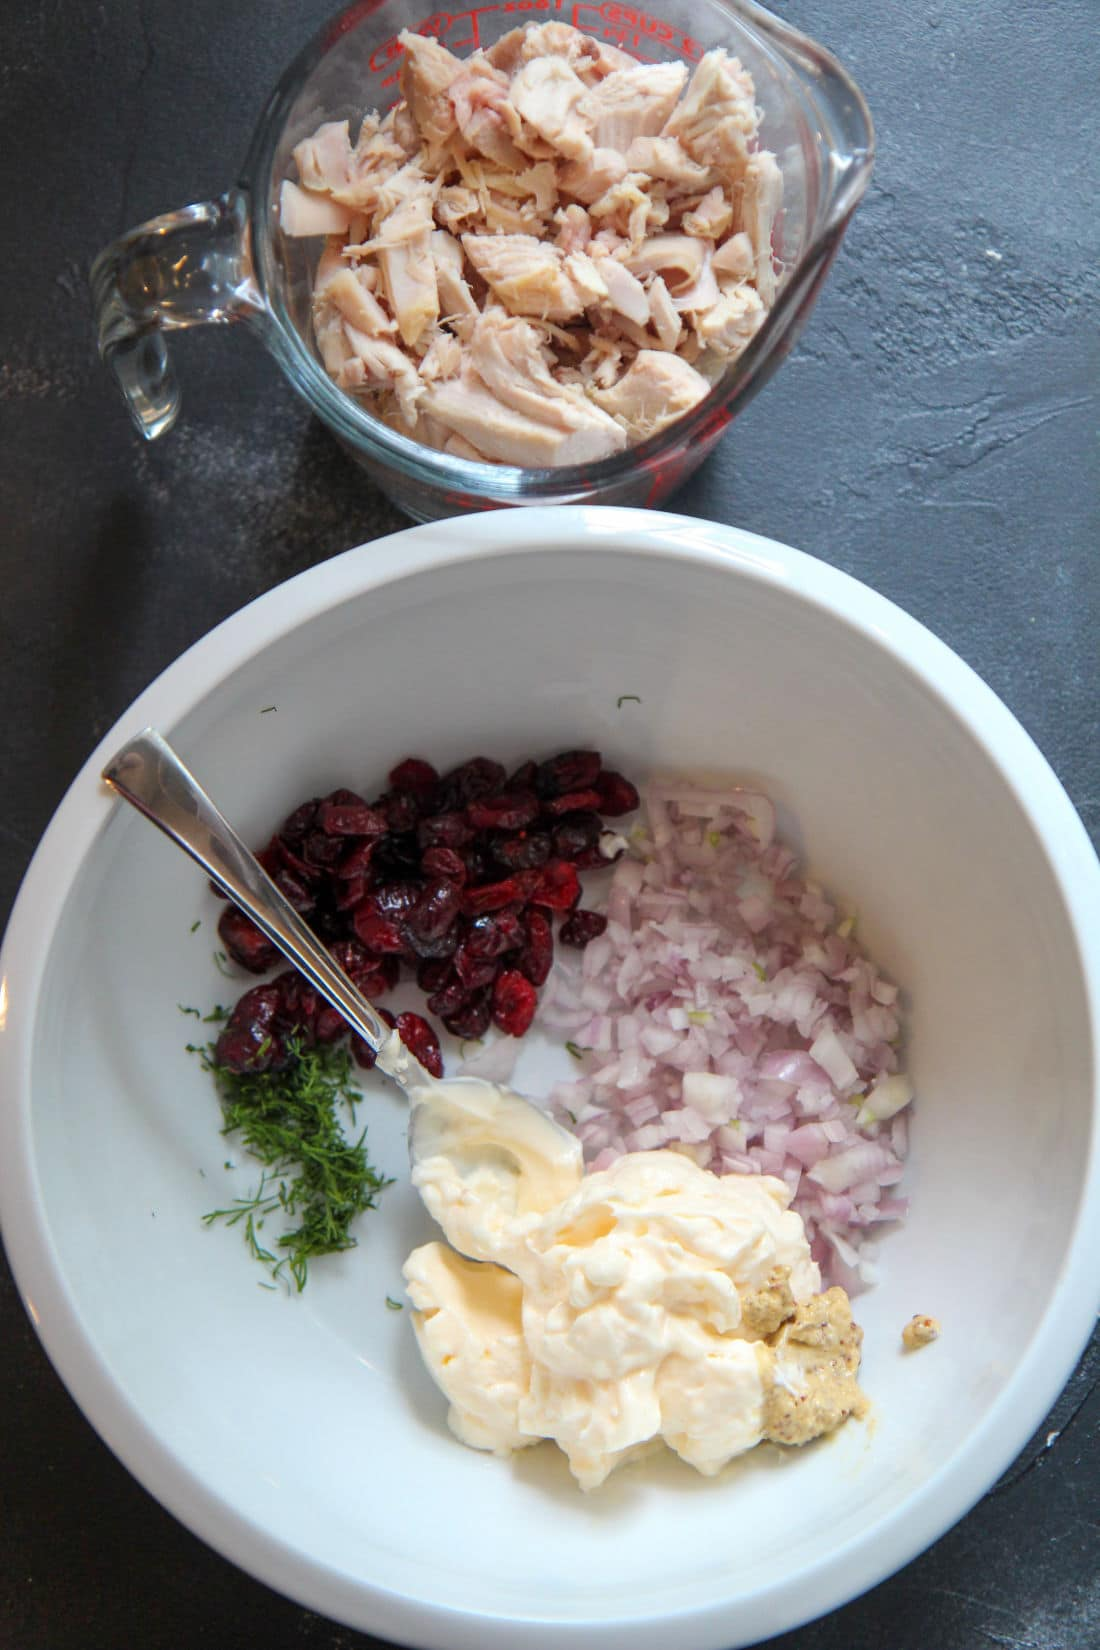 mayo, shallots, cranberries, and dill in a while bowl with a spoon and chicken in a cup